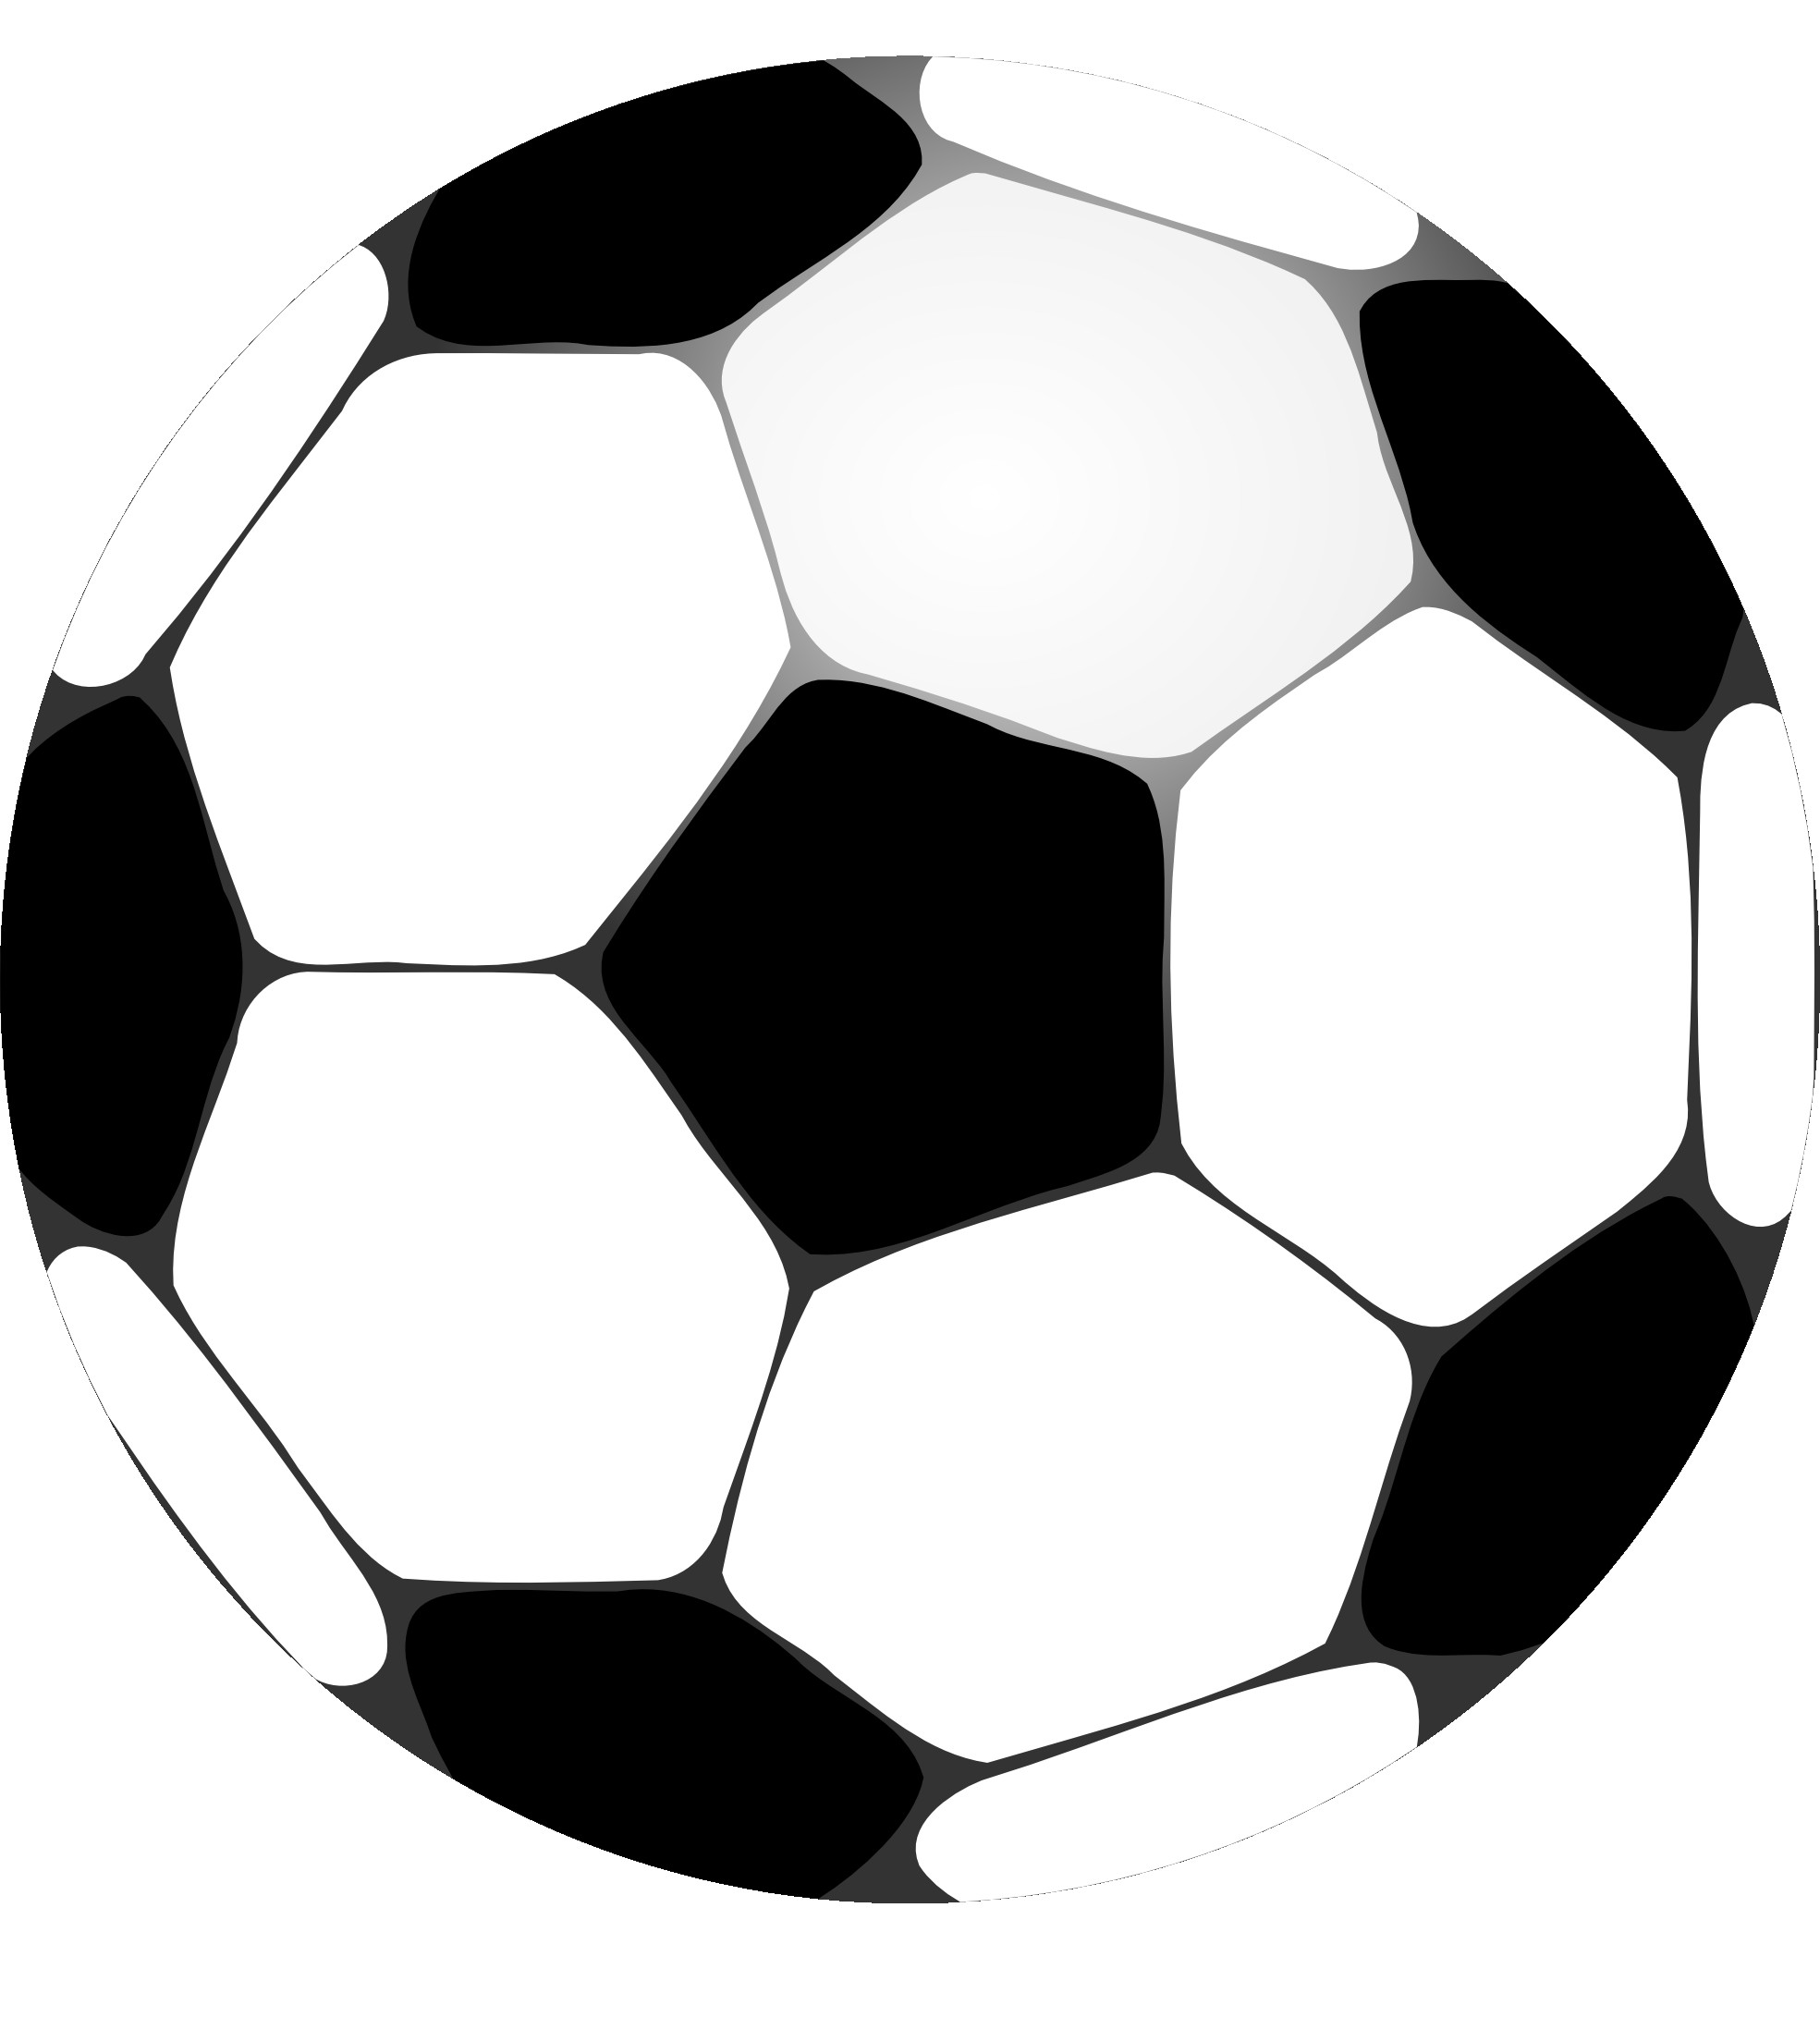 Football black and white football clipart black and white 2.